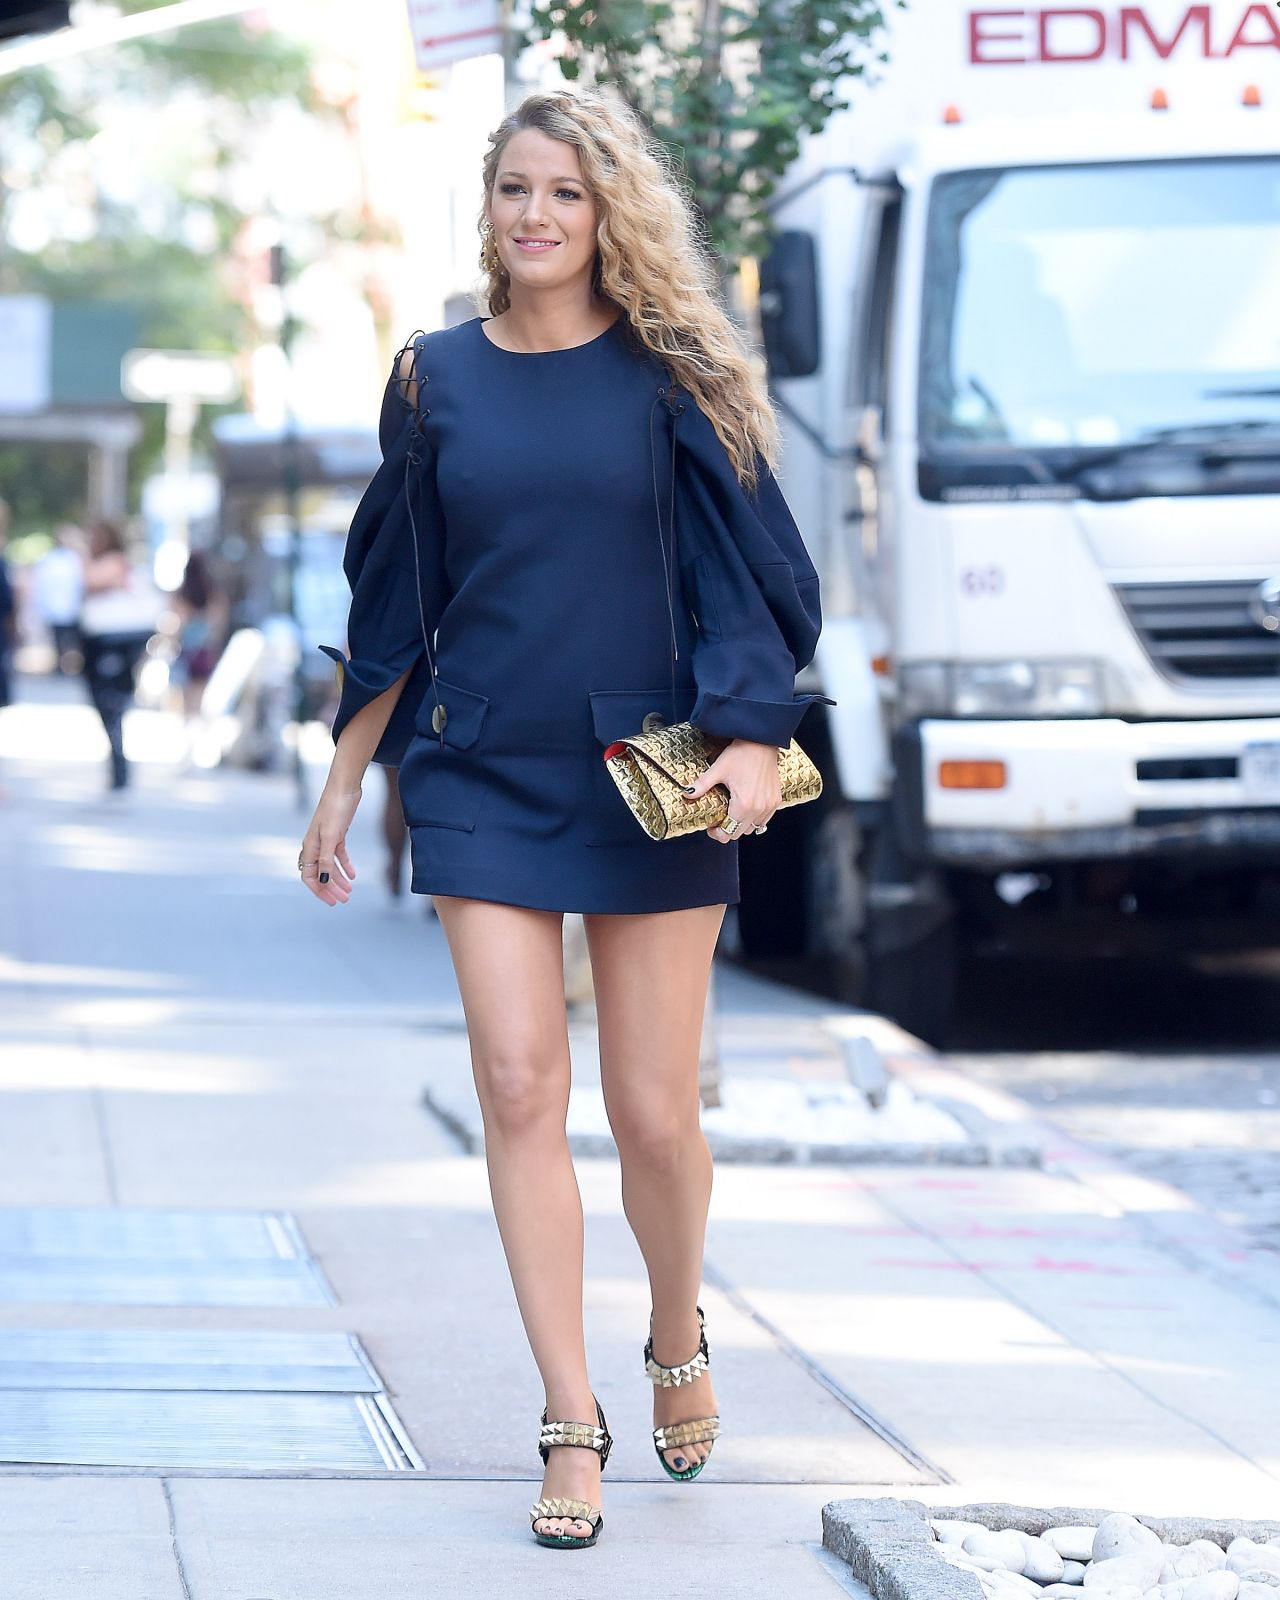 Blake Lively Chic Street Style